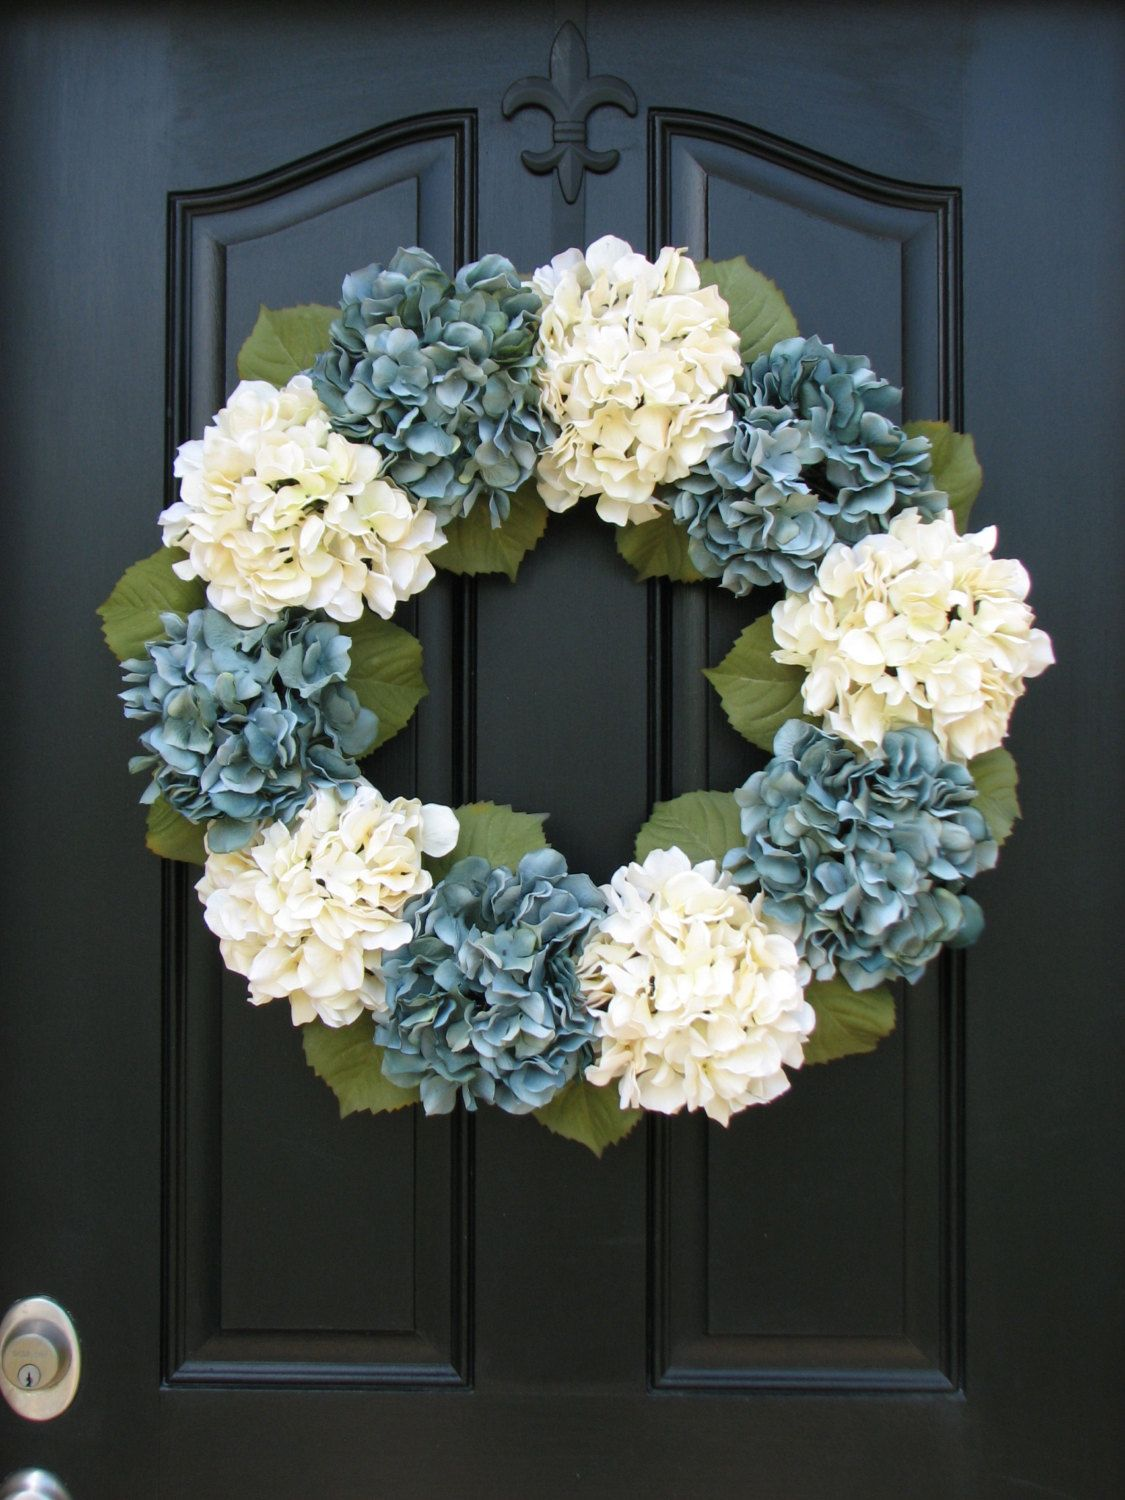 Summer Wreaths Blue Hydrangea Wreath Spring Decorations Spring Wreaths Etsy Wreaths Spring Hydrangeas Spring Home Decor